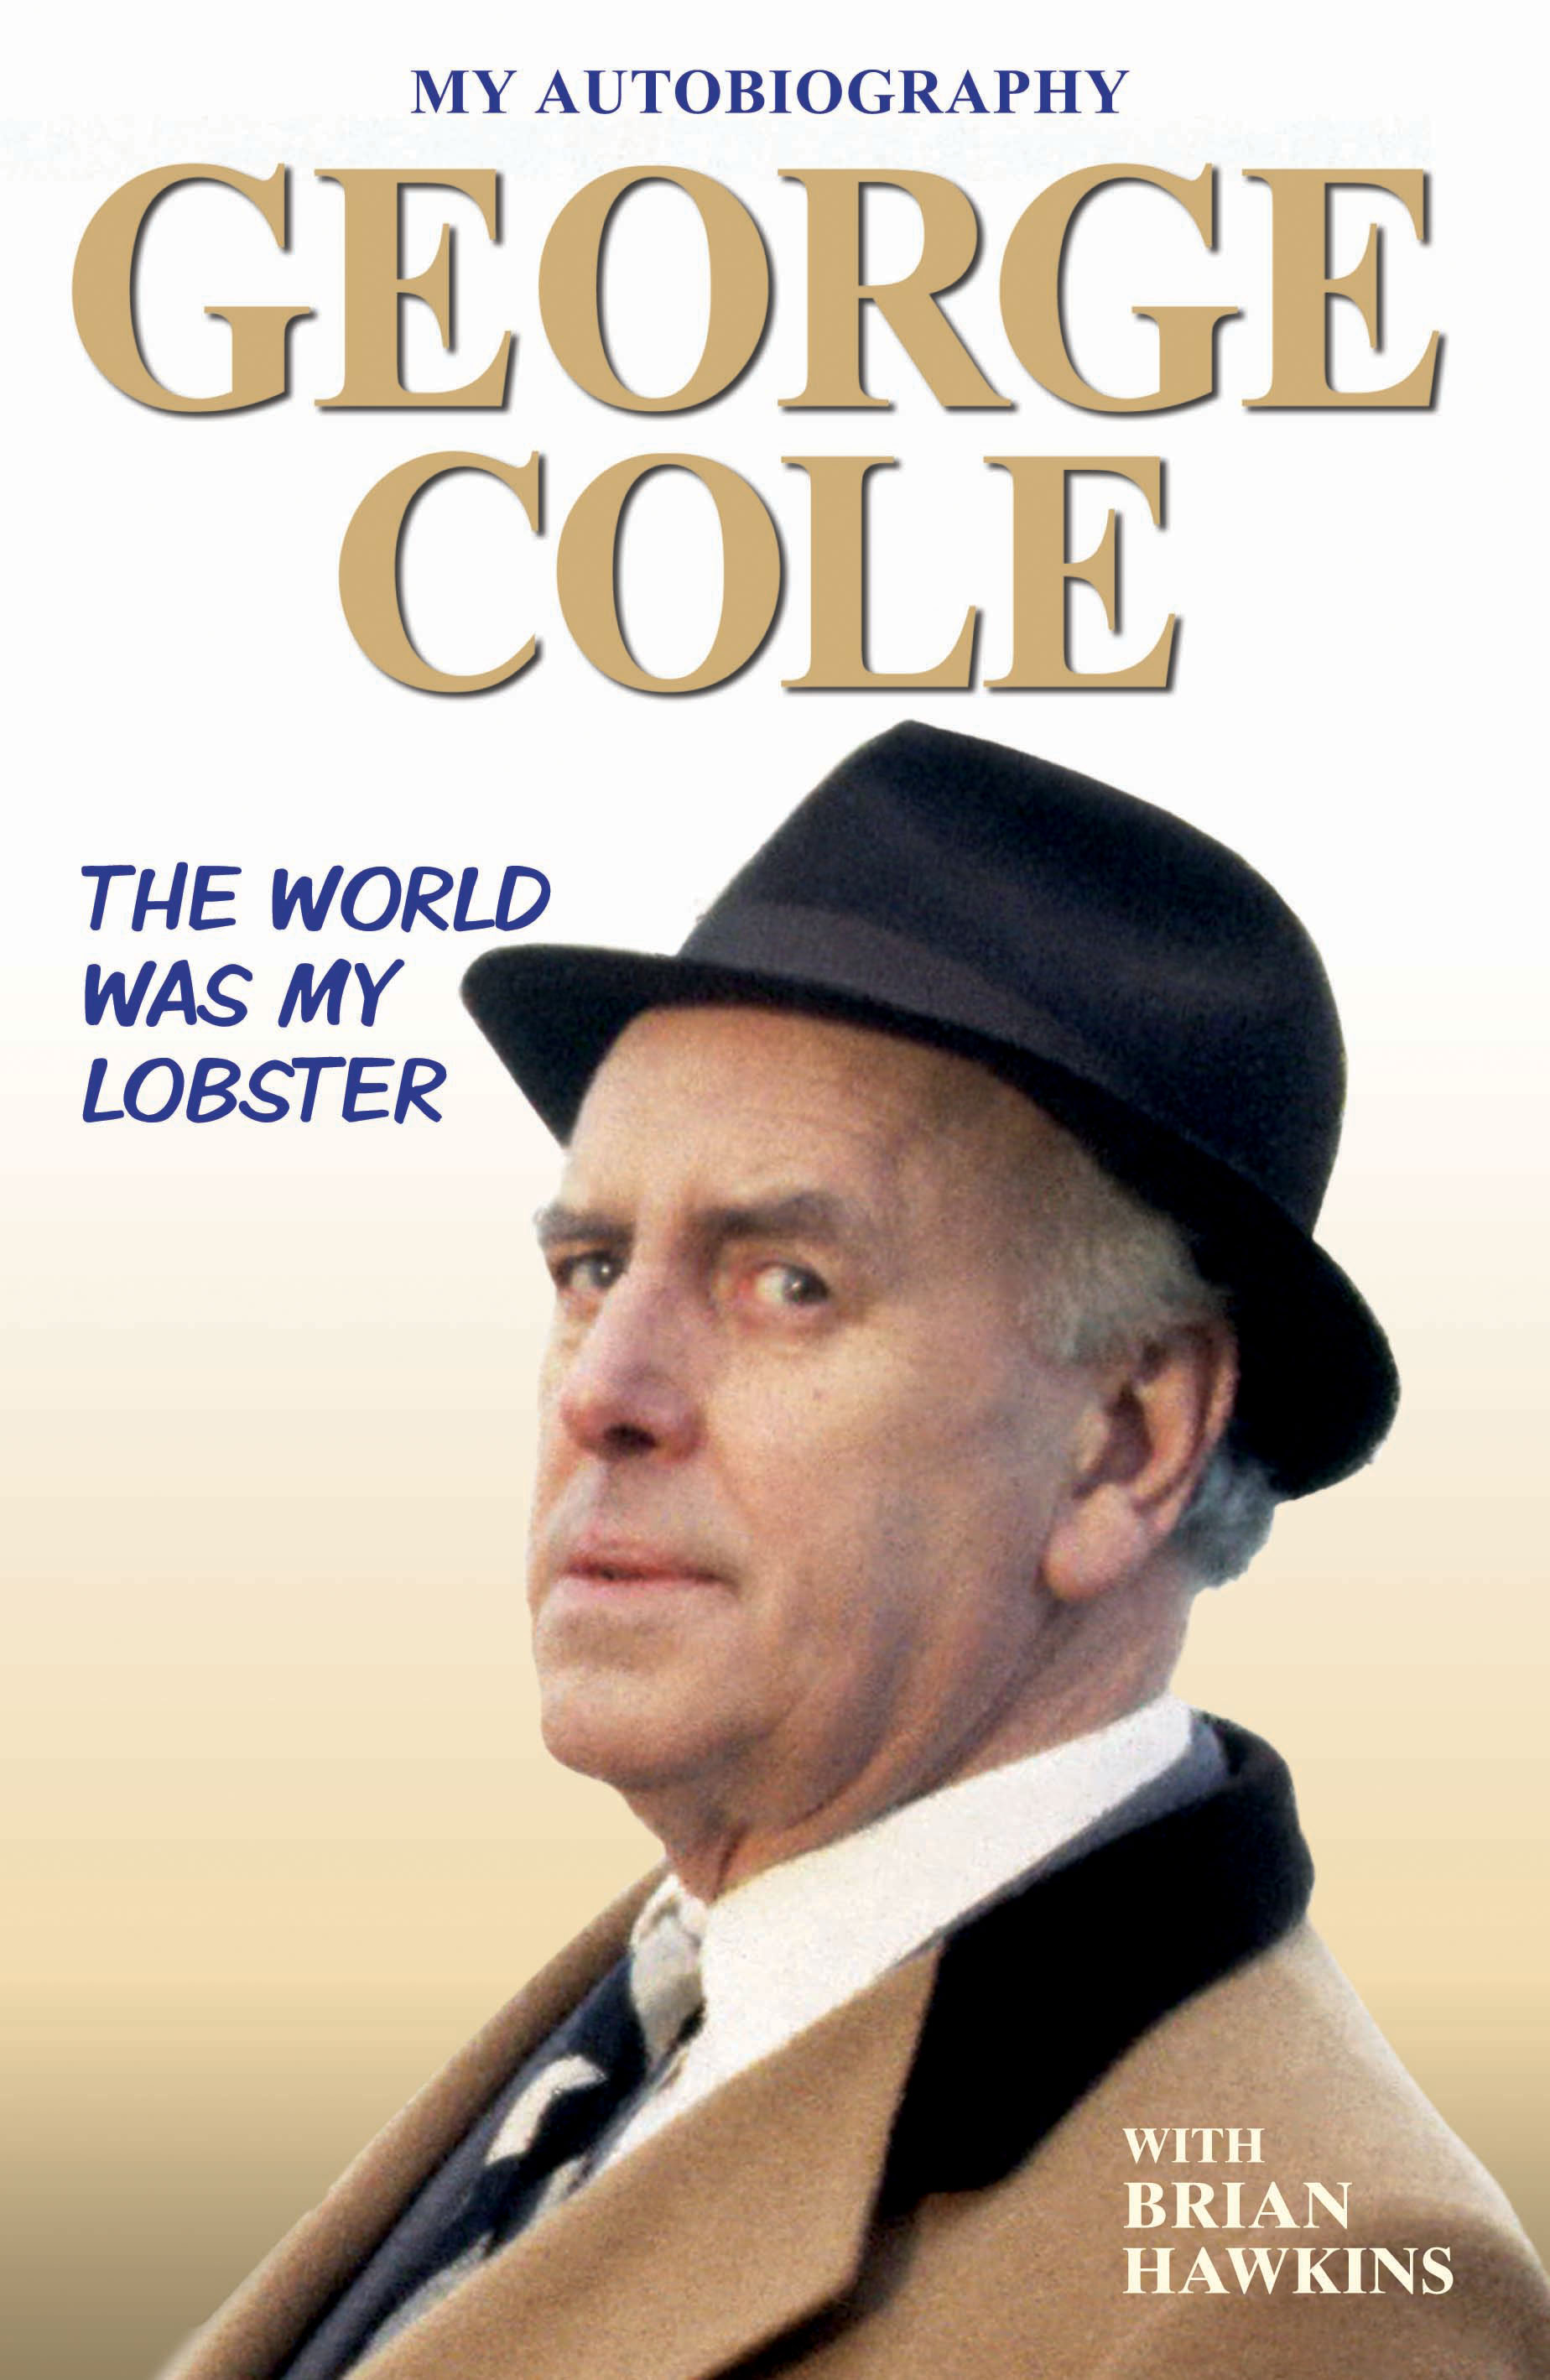 george cole football playergeorge cole wiki, george cole leicester, george cole football player, george cole, george cole actor, george cole auction, george cole chelsea, george cole footballer, george cole dope, george cole funeral, george cole 2015, george cole net worth, george cole imdb, george cole alastair sim, george cole character in st trinians, george cole dead, george cole obituary, george cole and dennis waterman, george cole tributes, george cole quotes